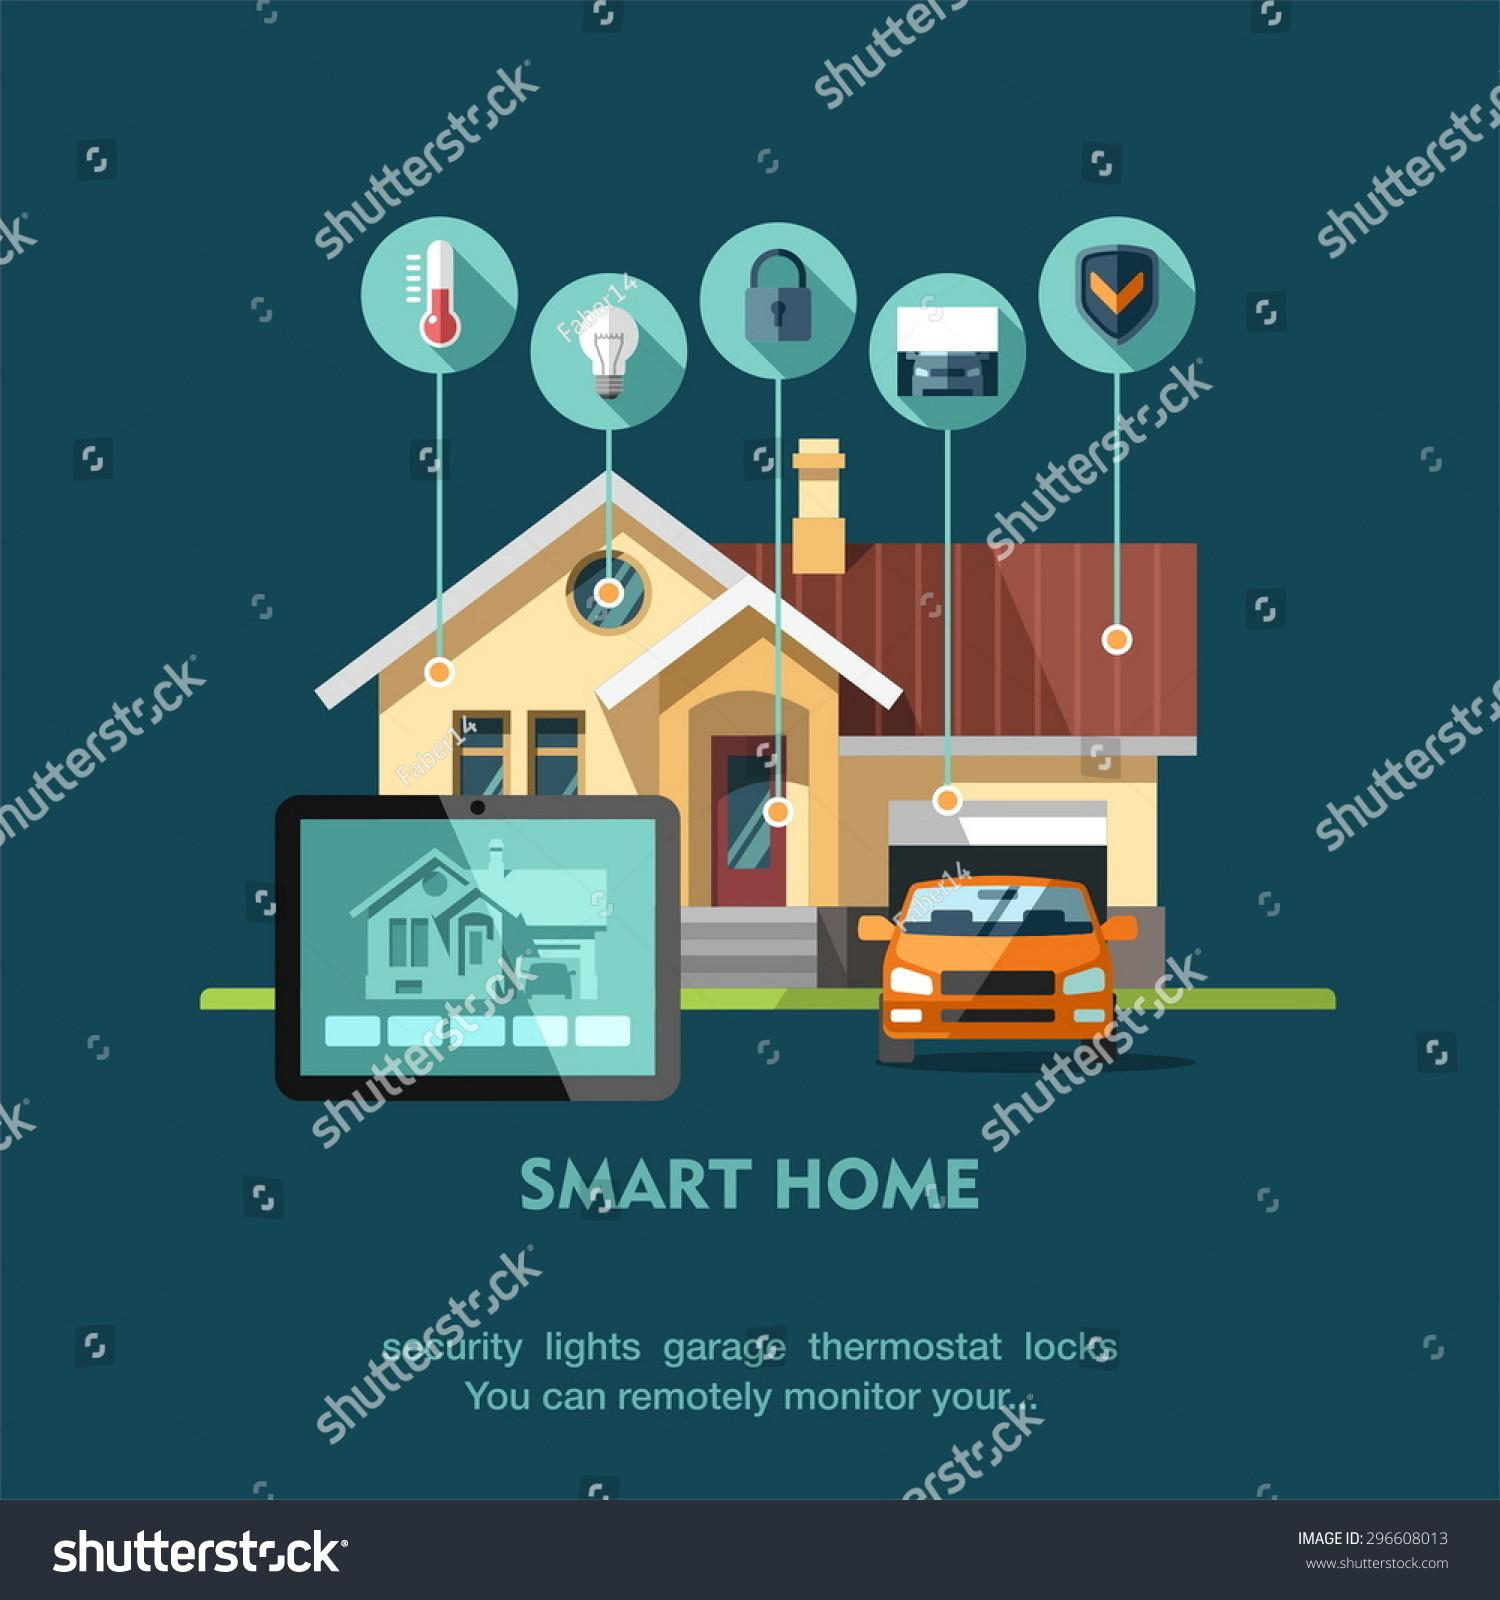 Smart Home Flat Design Style Vector Stock